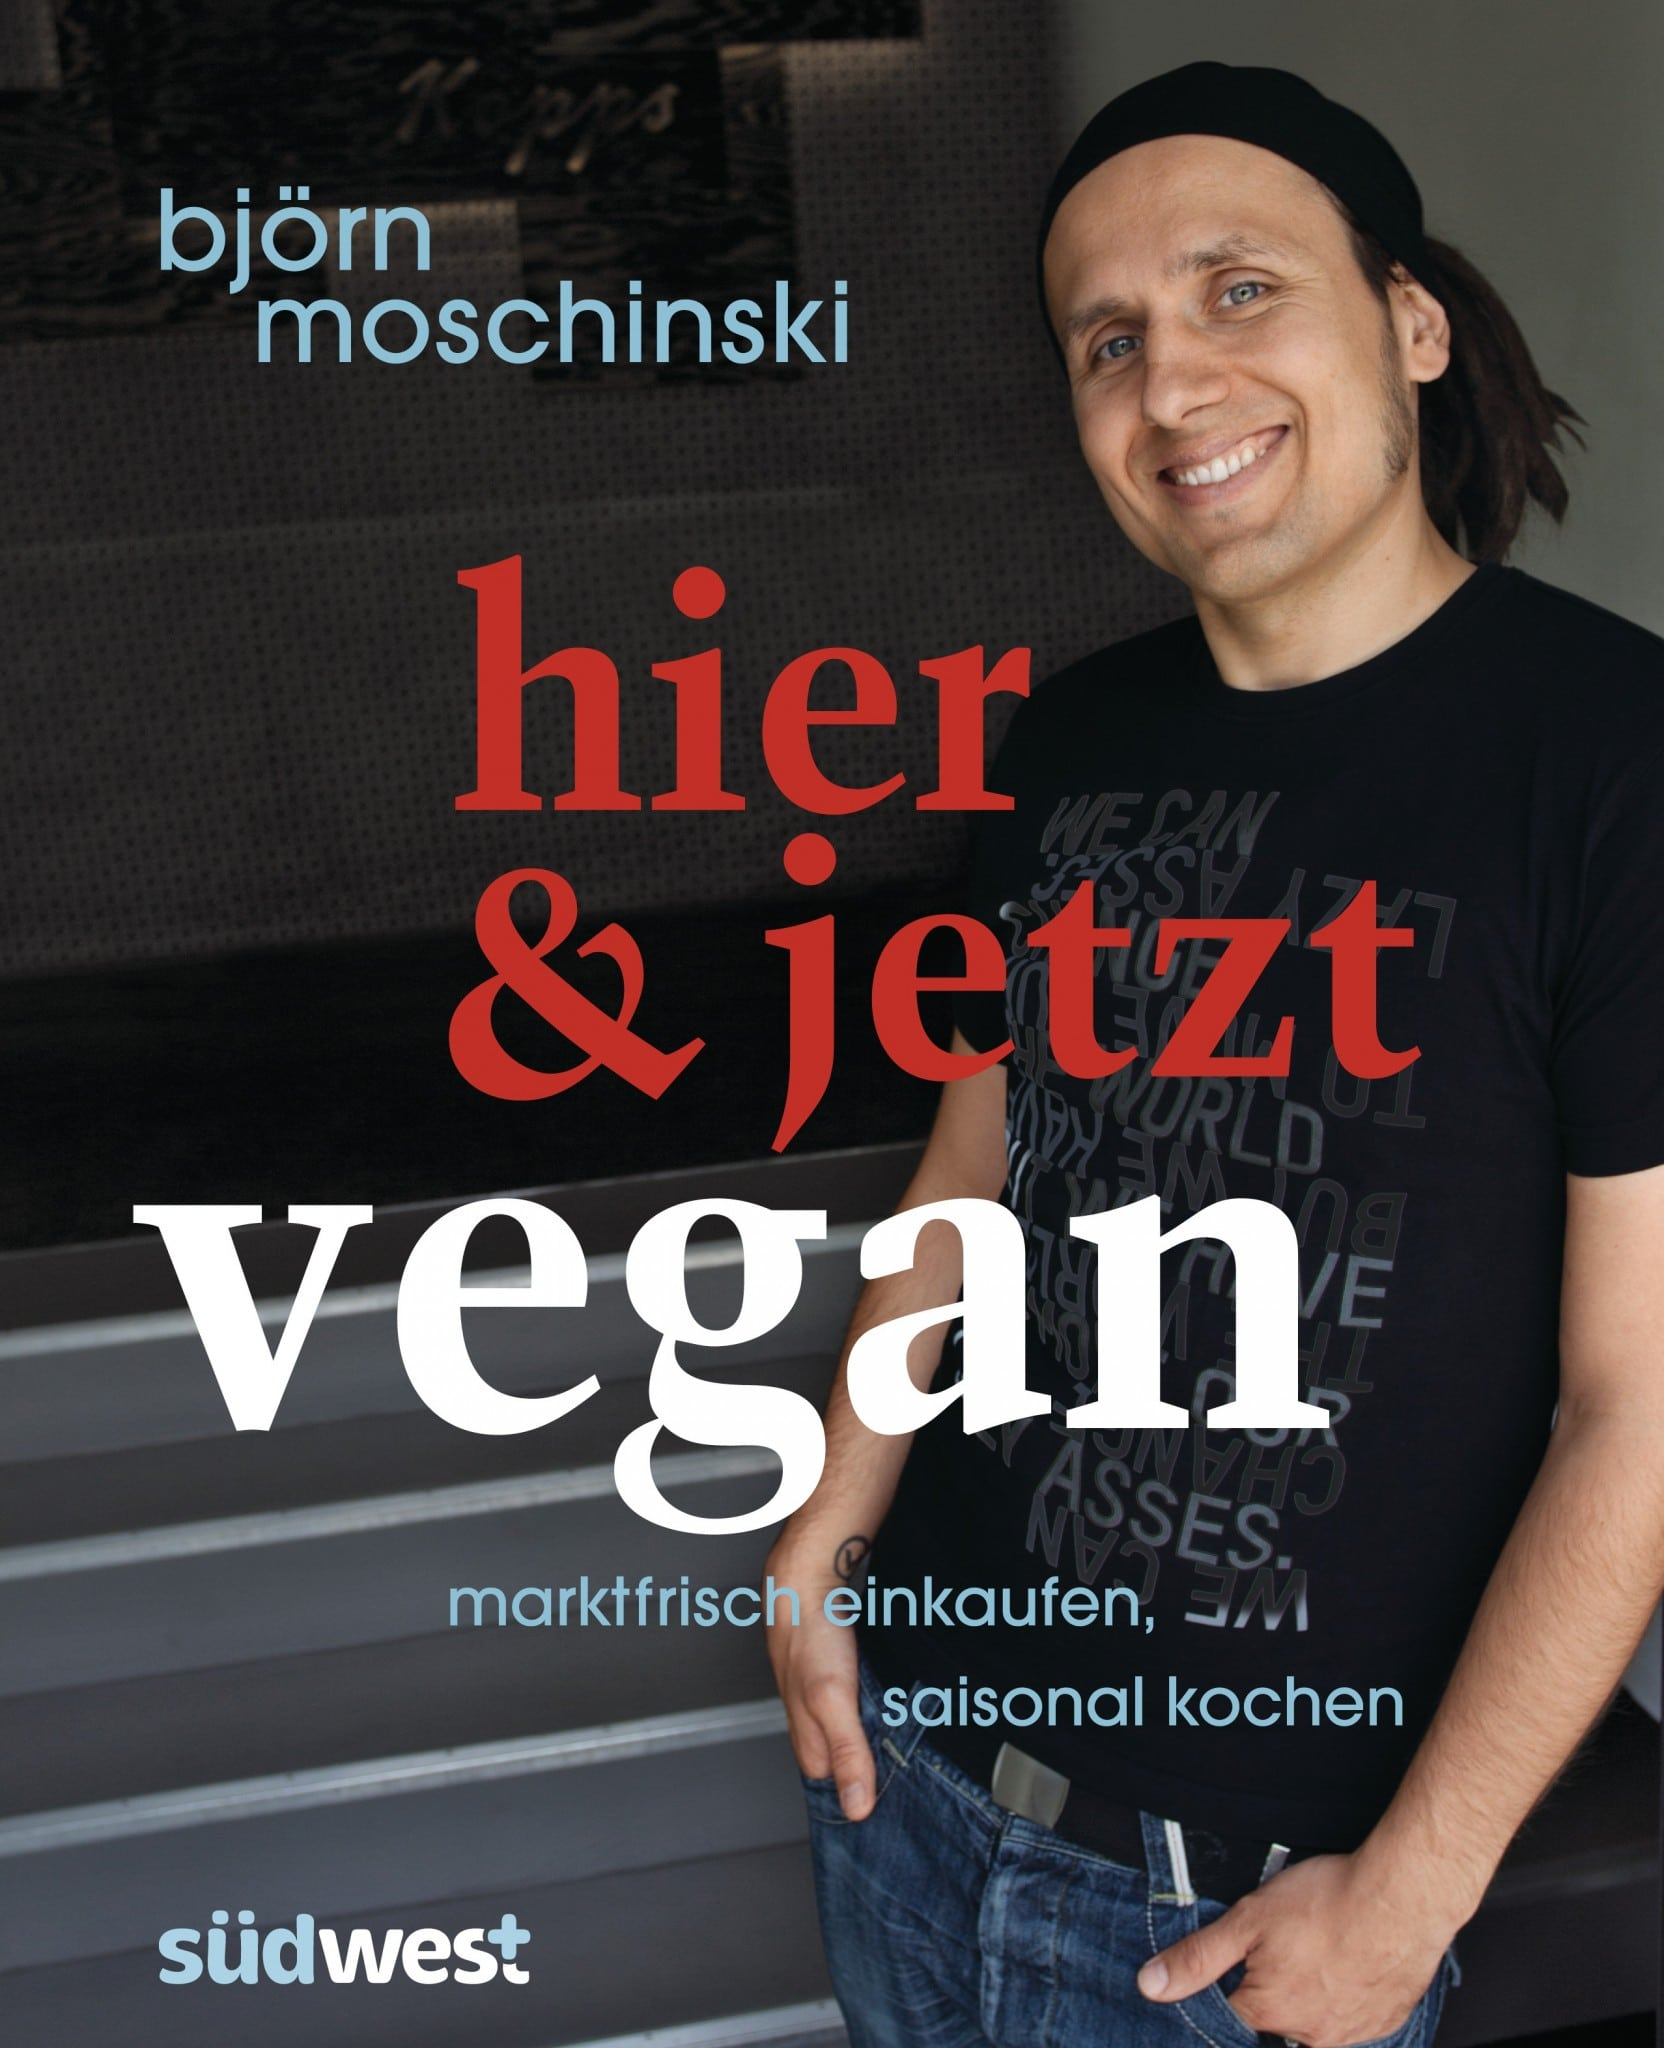 https://proveg.com/de/wp-content/uploads/sites/5/2018/10/Moschinski_BHier_und_jetzt_vegan_132546.jpg